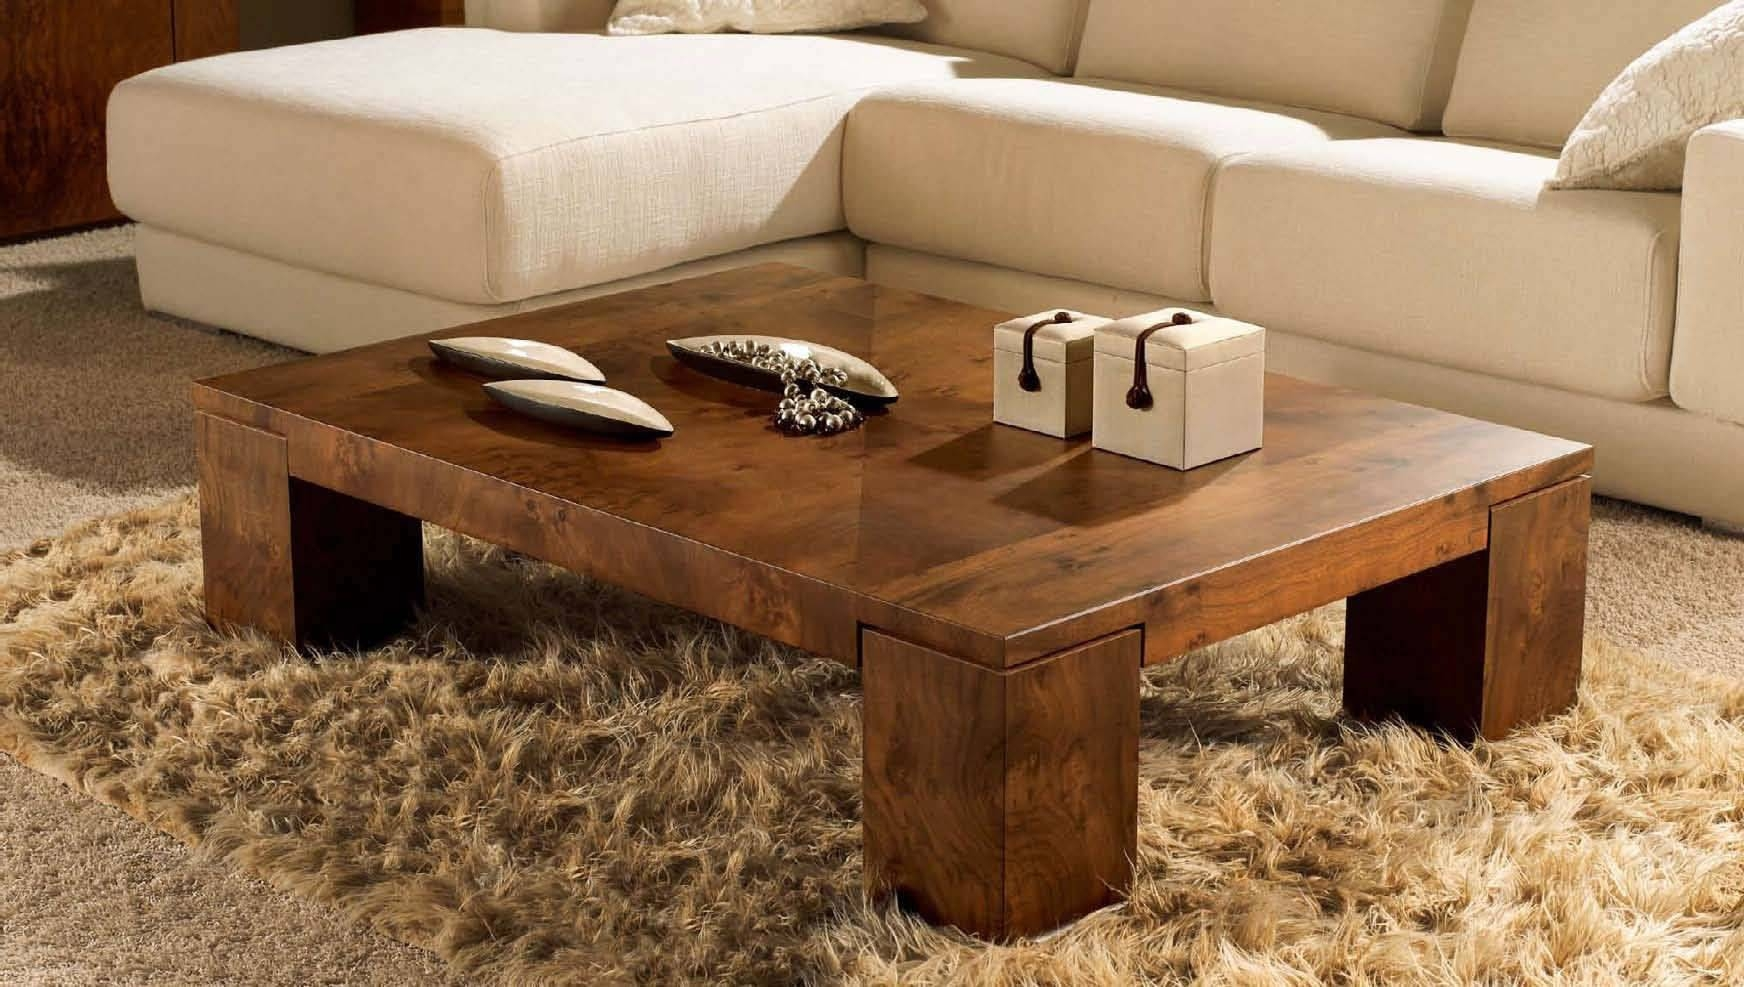 Big Floor Flower Vase Idea Big Vase Decor Set Coffee Tables For within Big Square Coffee Tables (Image 5 of 30)